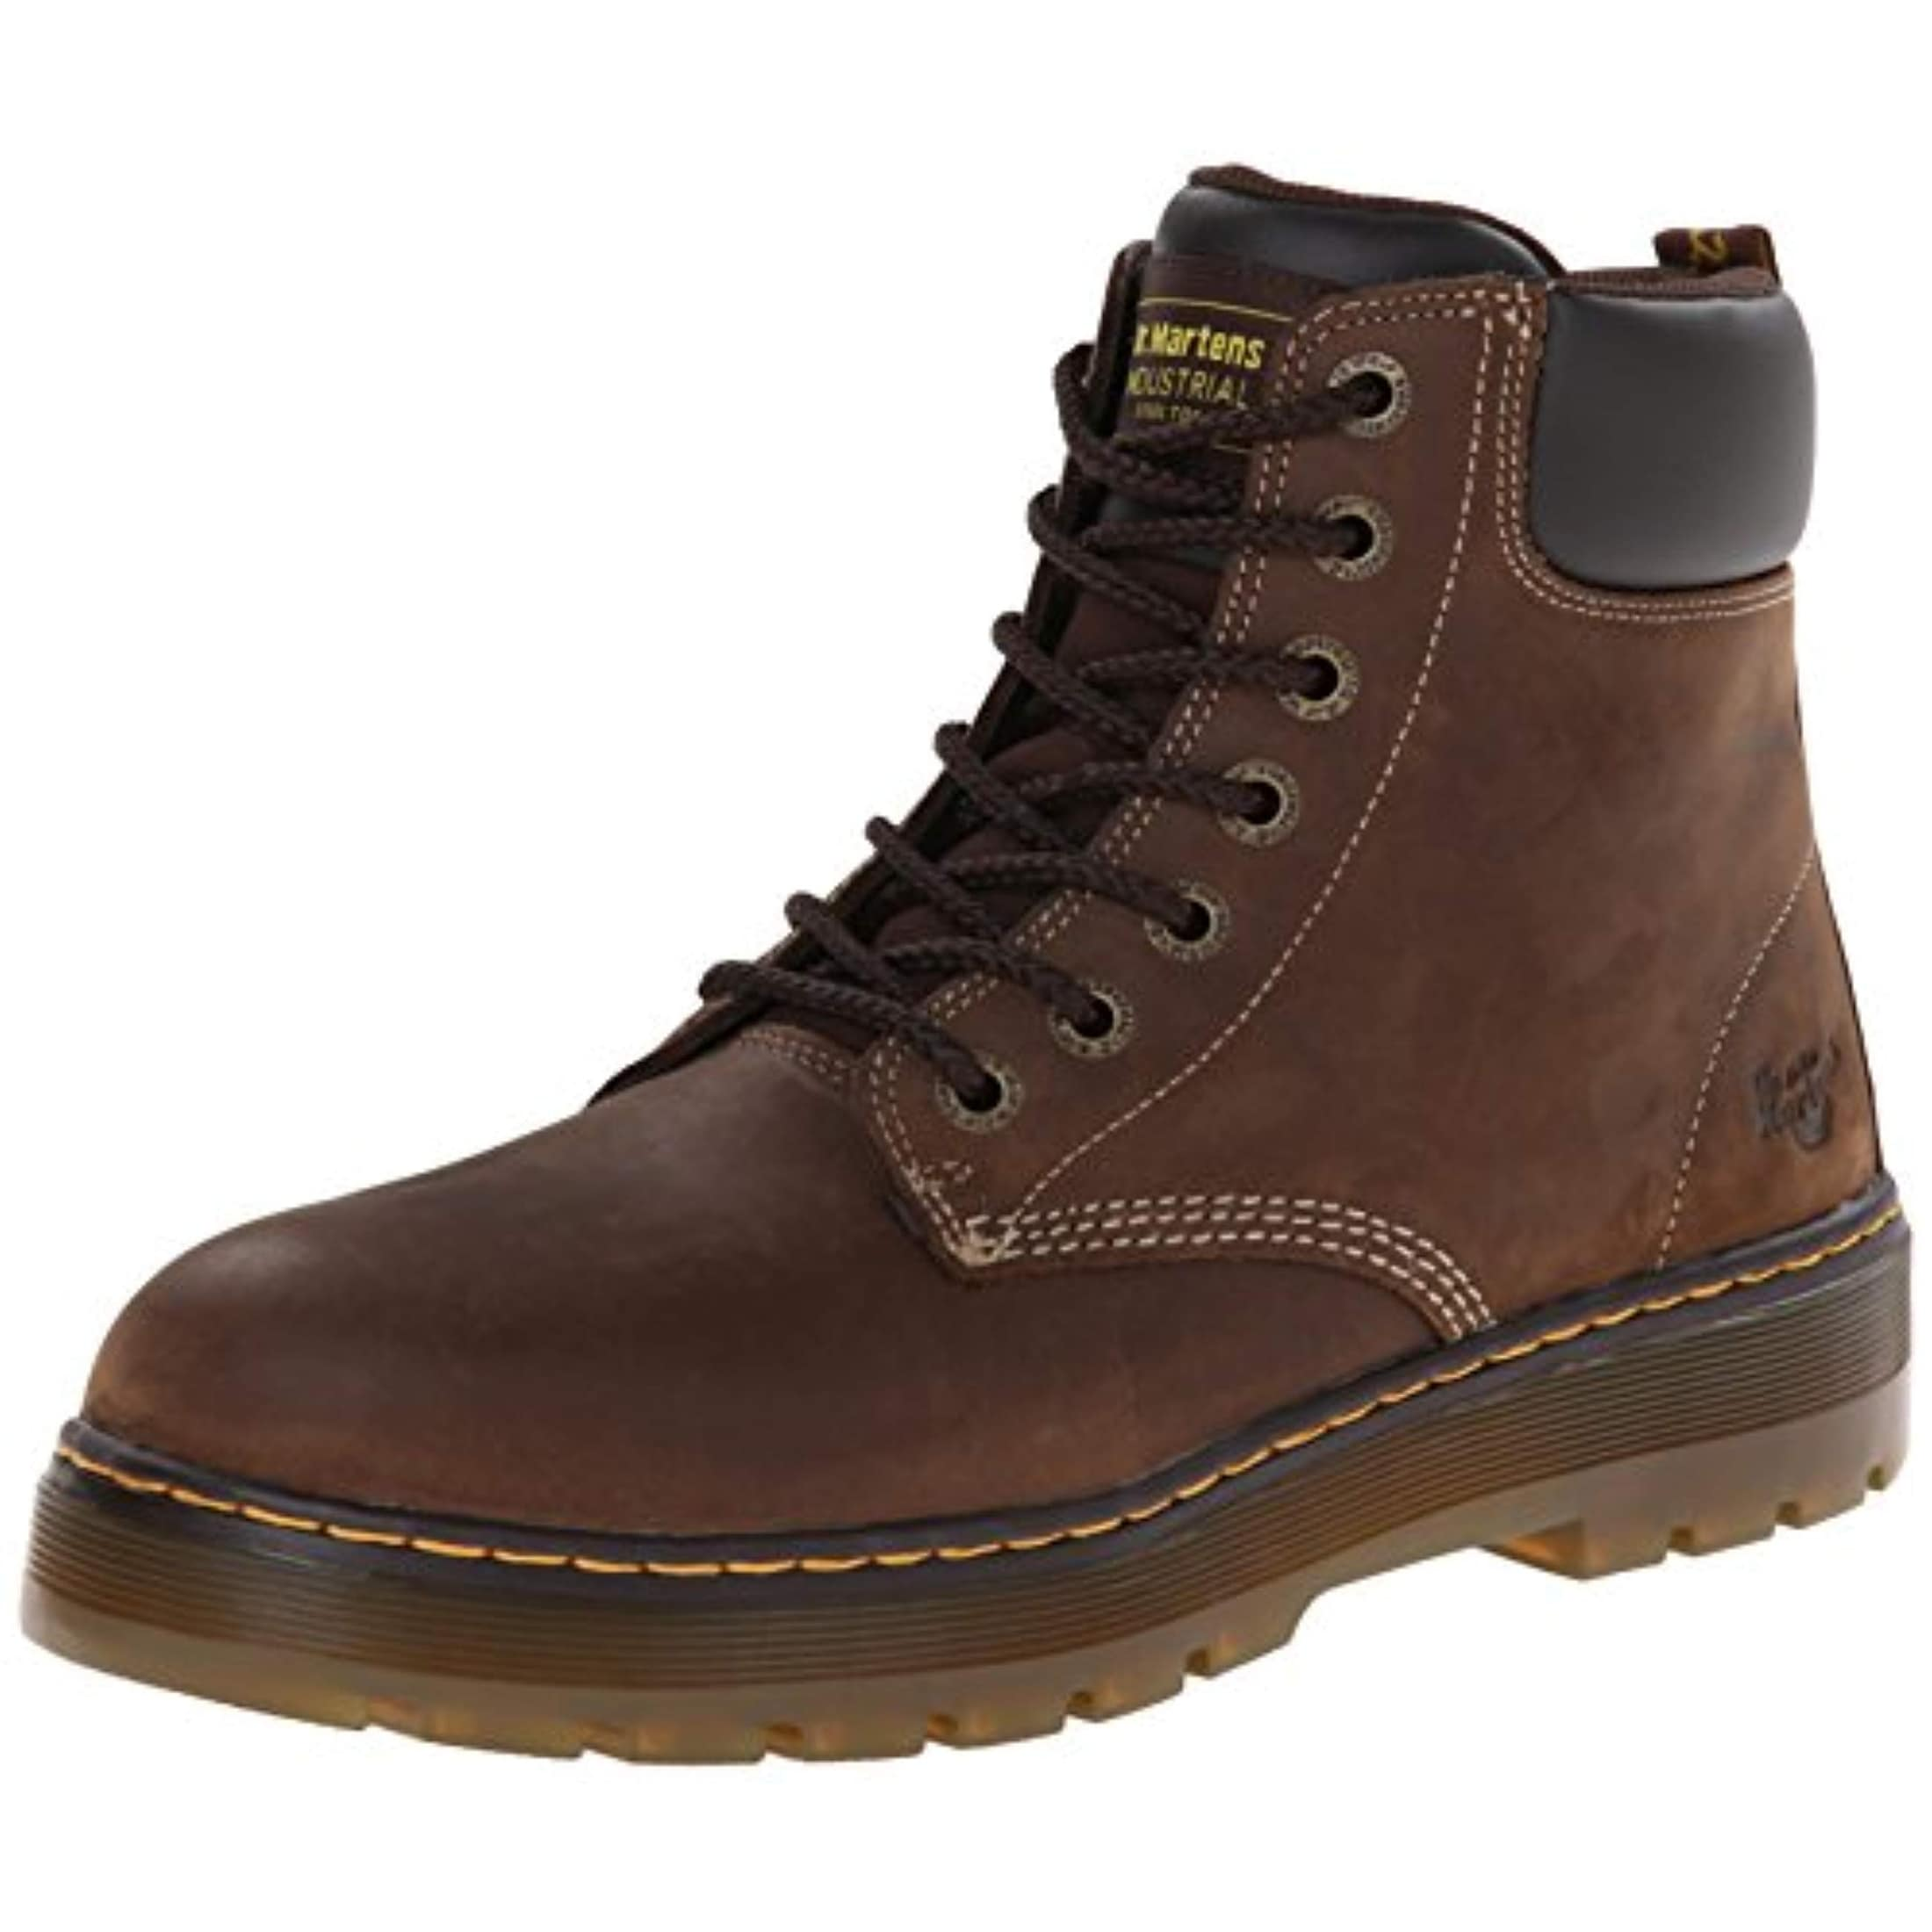 529e64e4f4a Dr. Martens Men's Winch 7-Eye Lace-Up Steel-Toe Dark Brown Boot